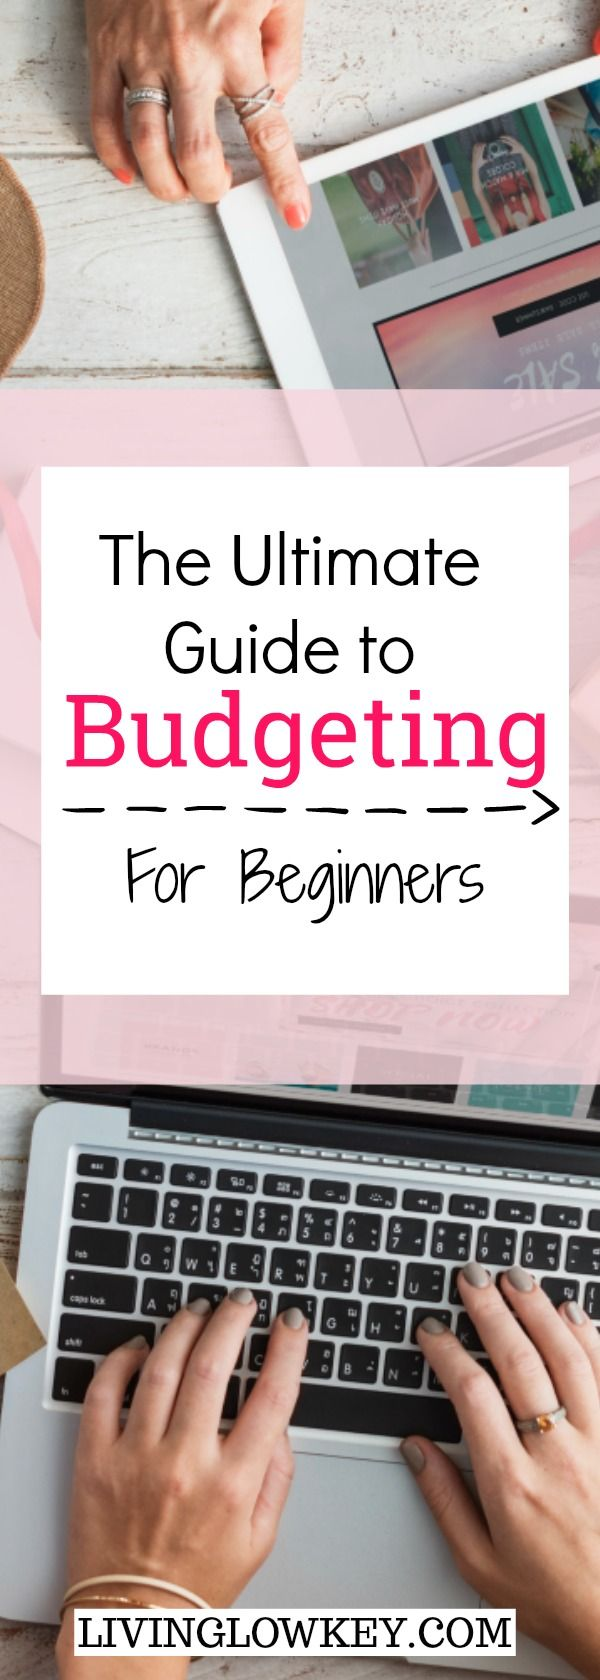 Ultimate Guide to Budgeting